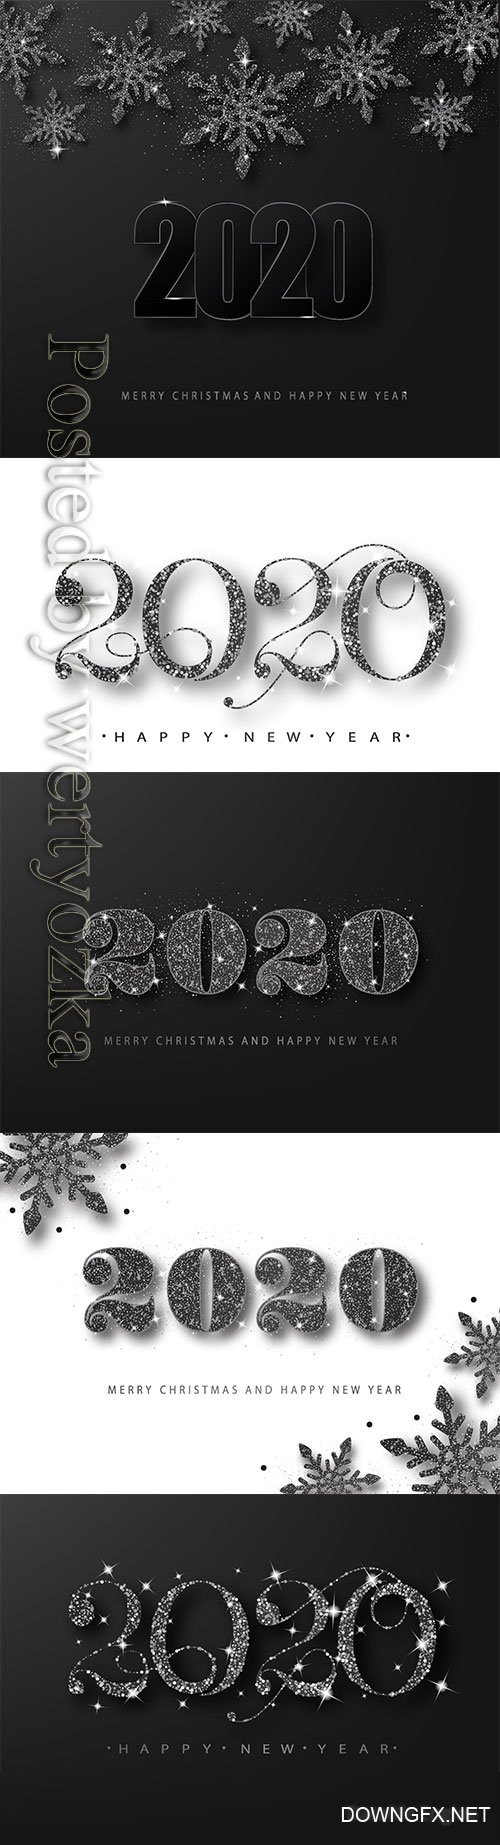 2020 Merry Chistmas and Happy New Year vector illustration # 16